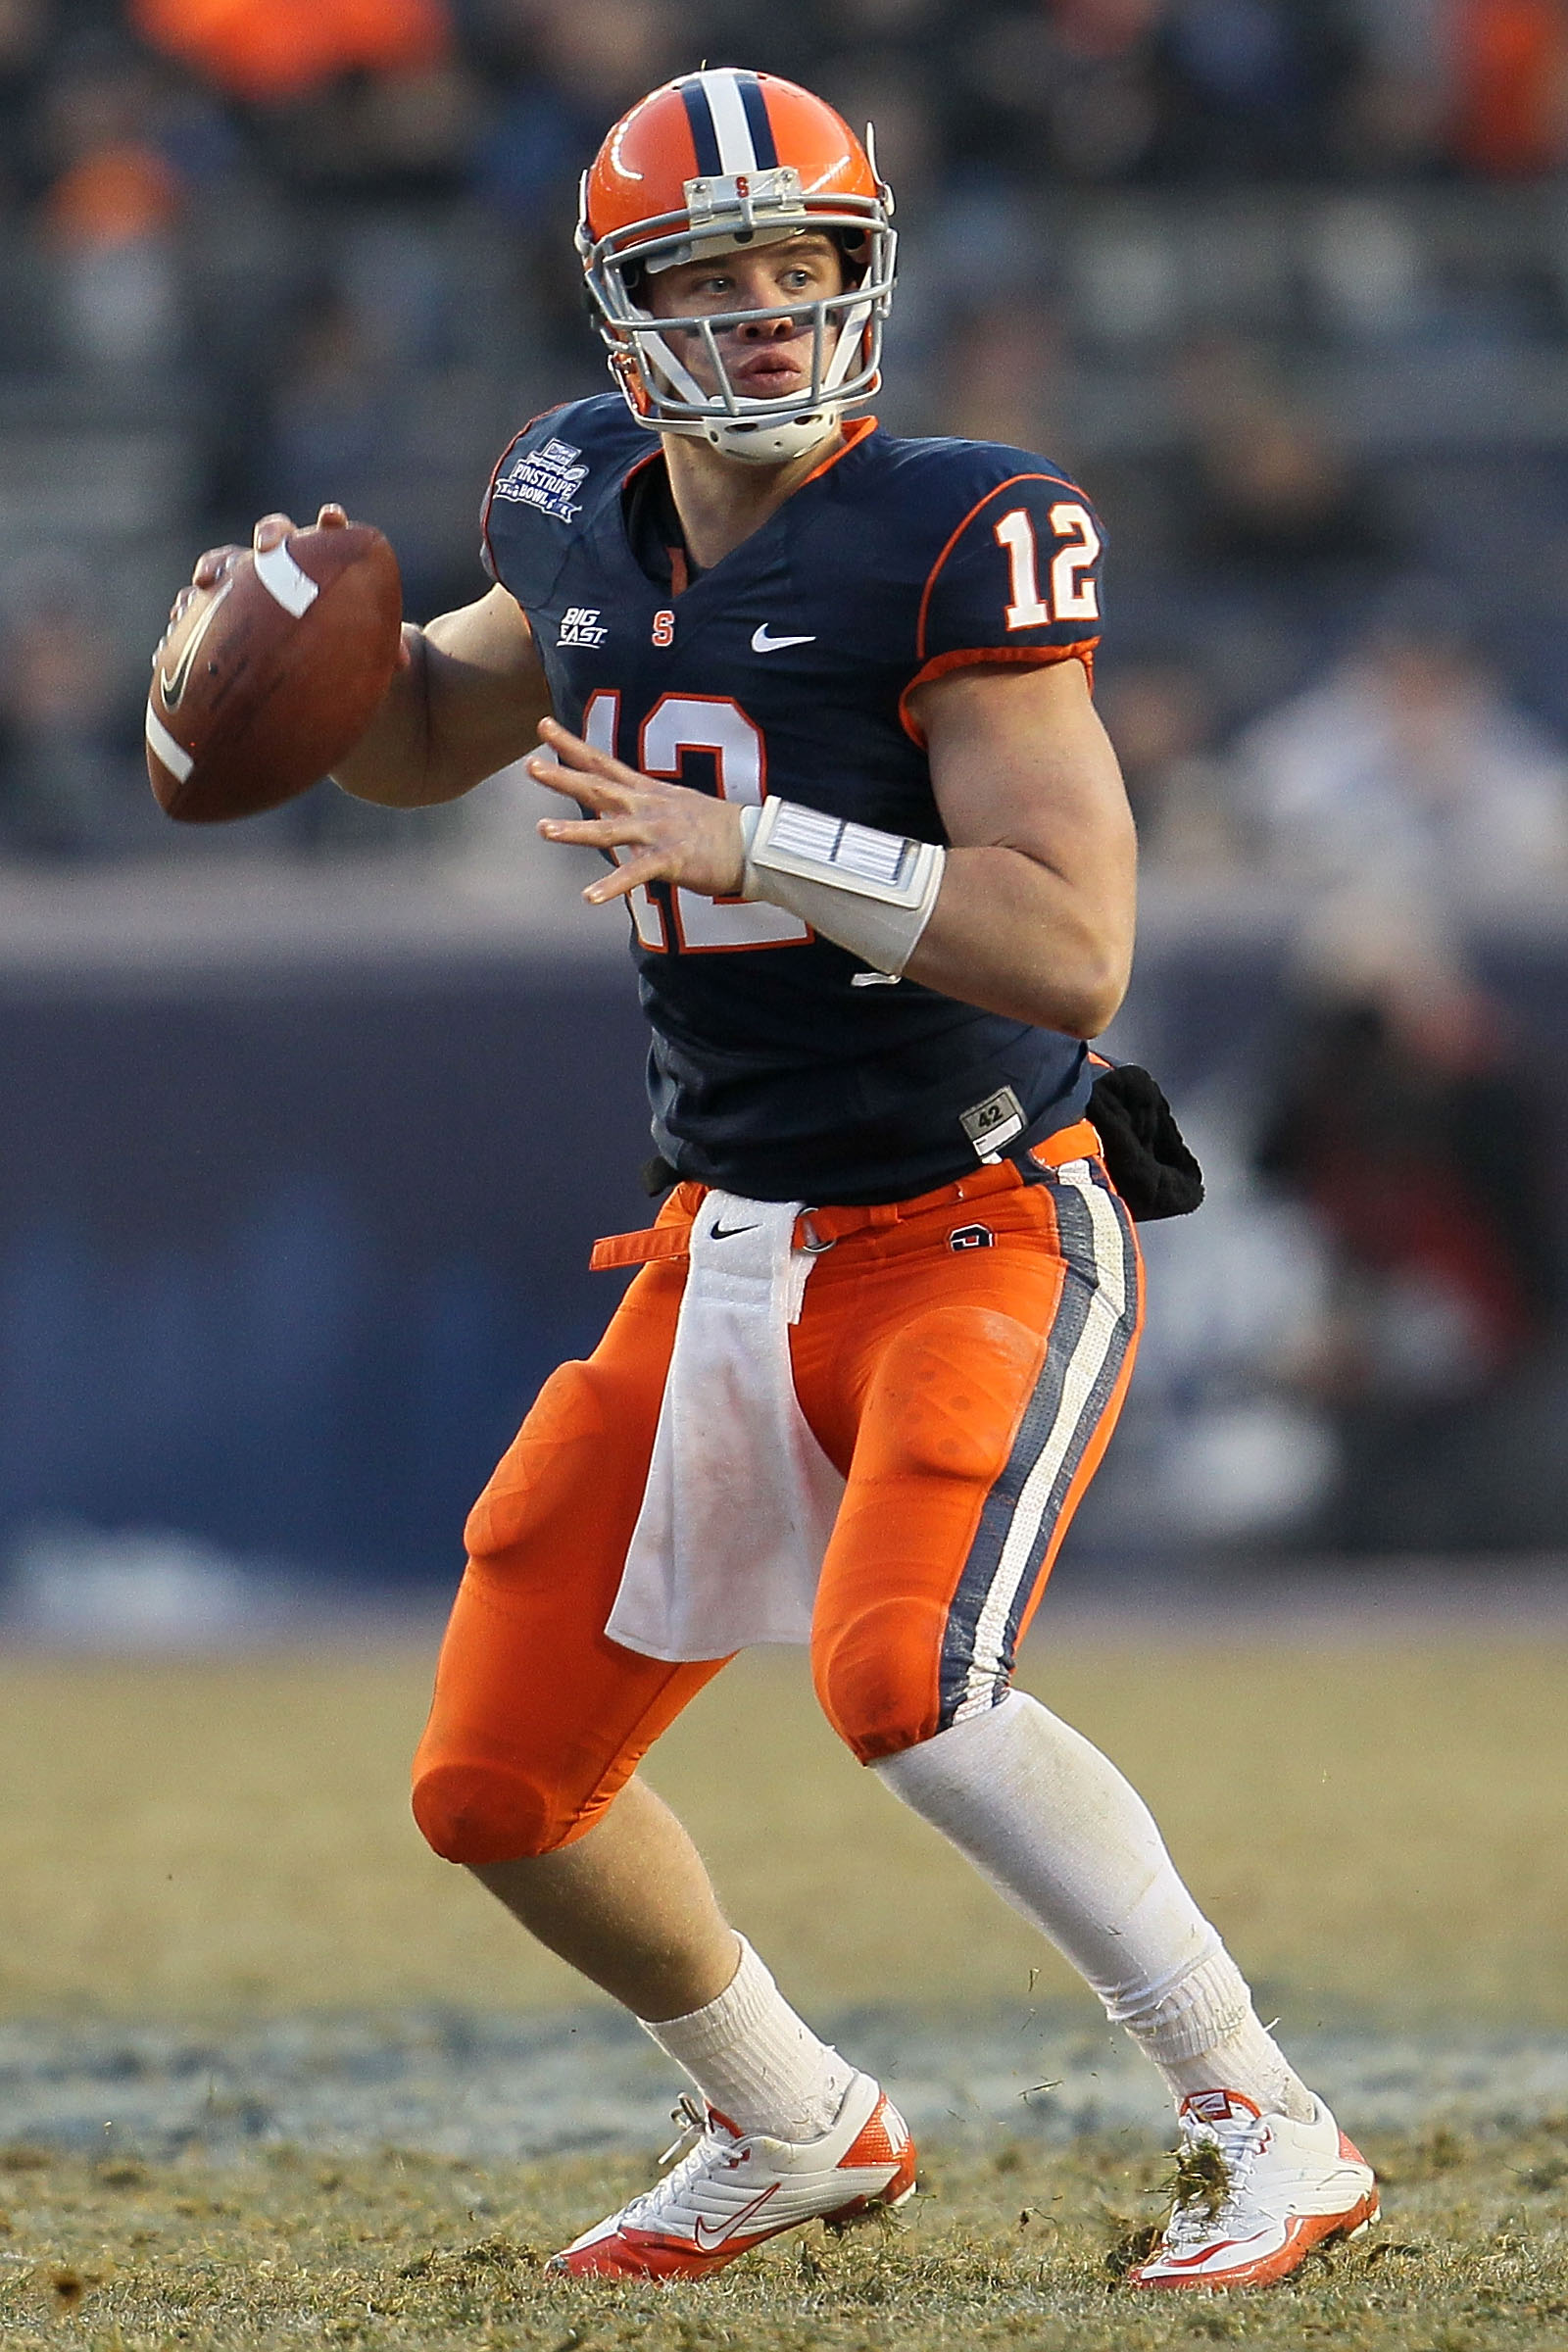 NEW YORK, NY - DECEMBER 30:  Quarterback Ryan Nassib #12 of the Syracuse Orange looks to pass against the Kansas State Wildcats during the New Era Pinstripe Bowl at Yankee Stadium on December 30, 2010 in New York, New York.  (Photo by Chris McGrath/Getty